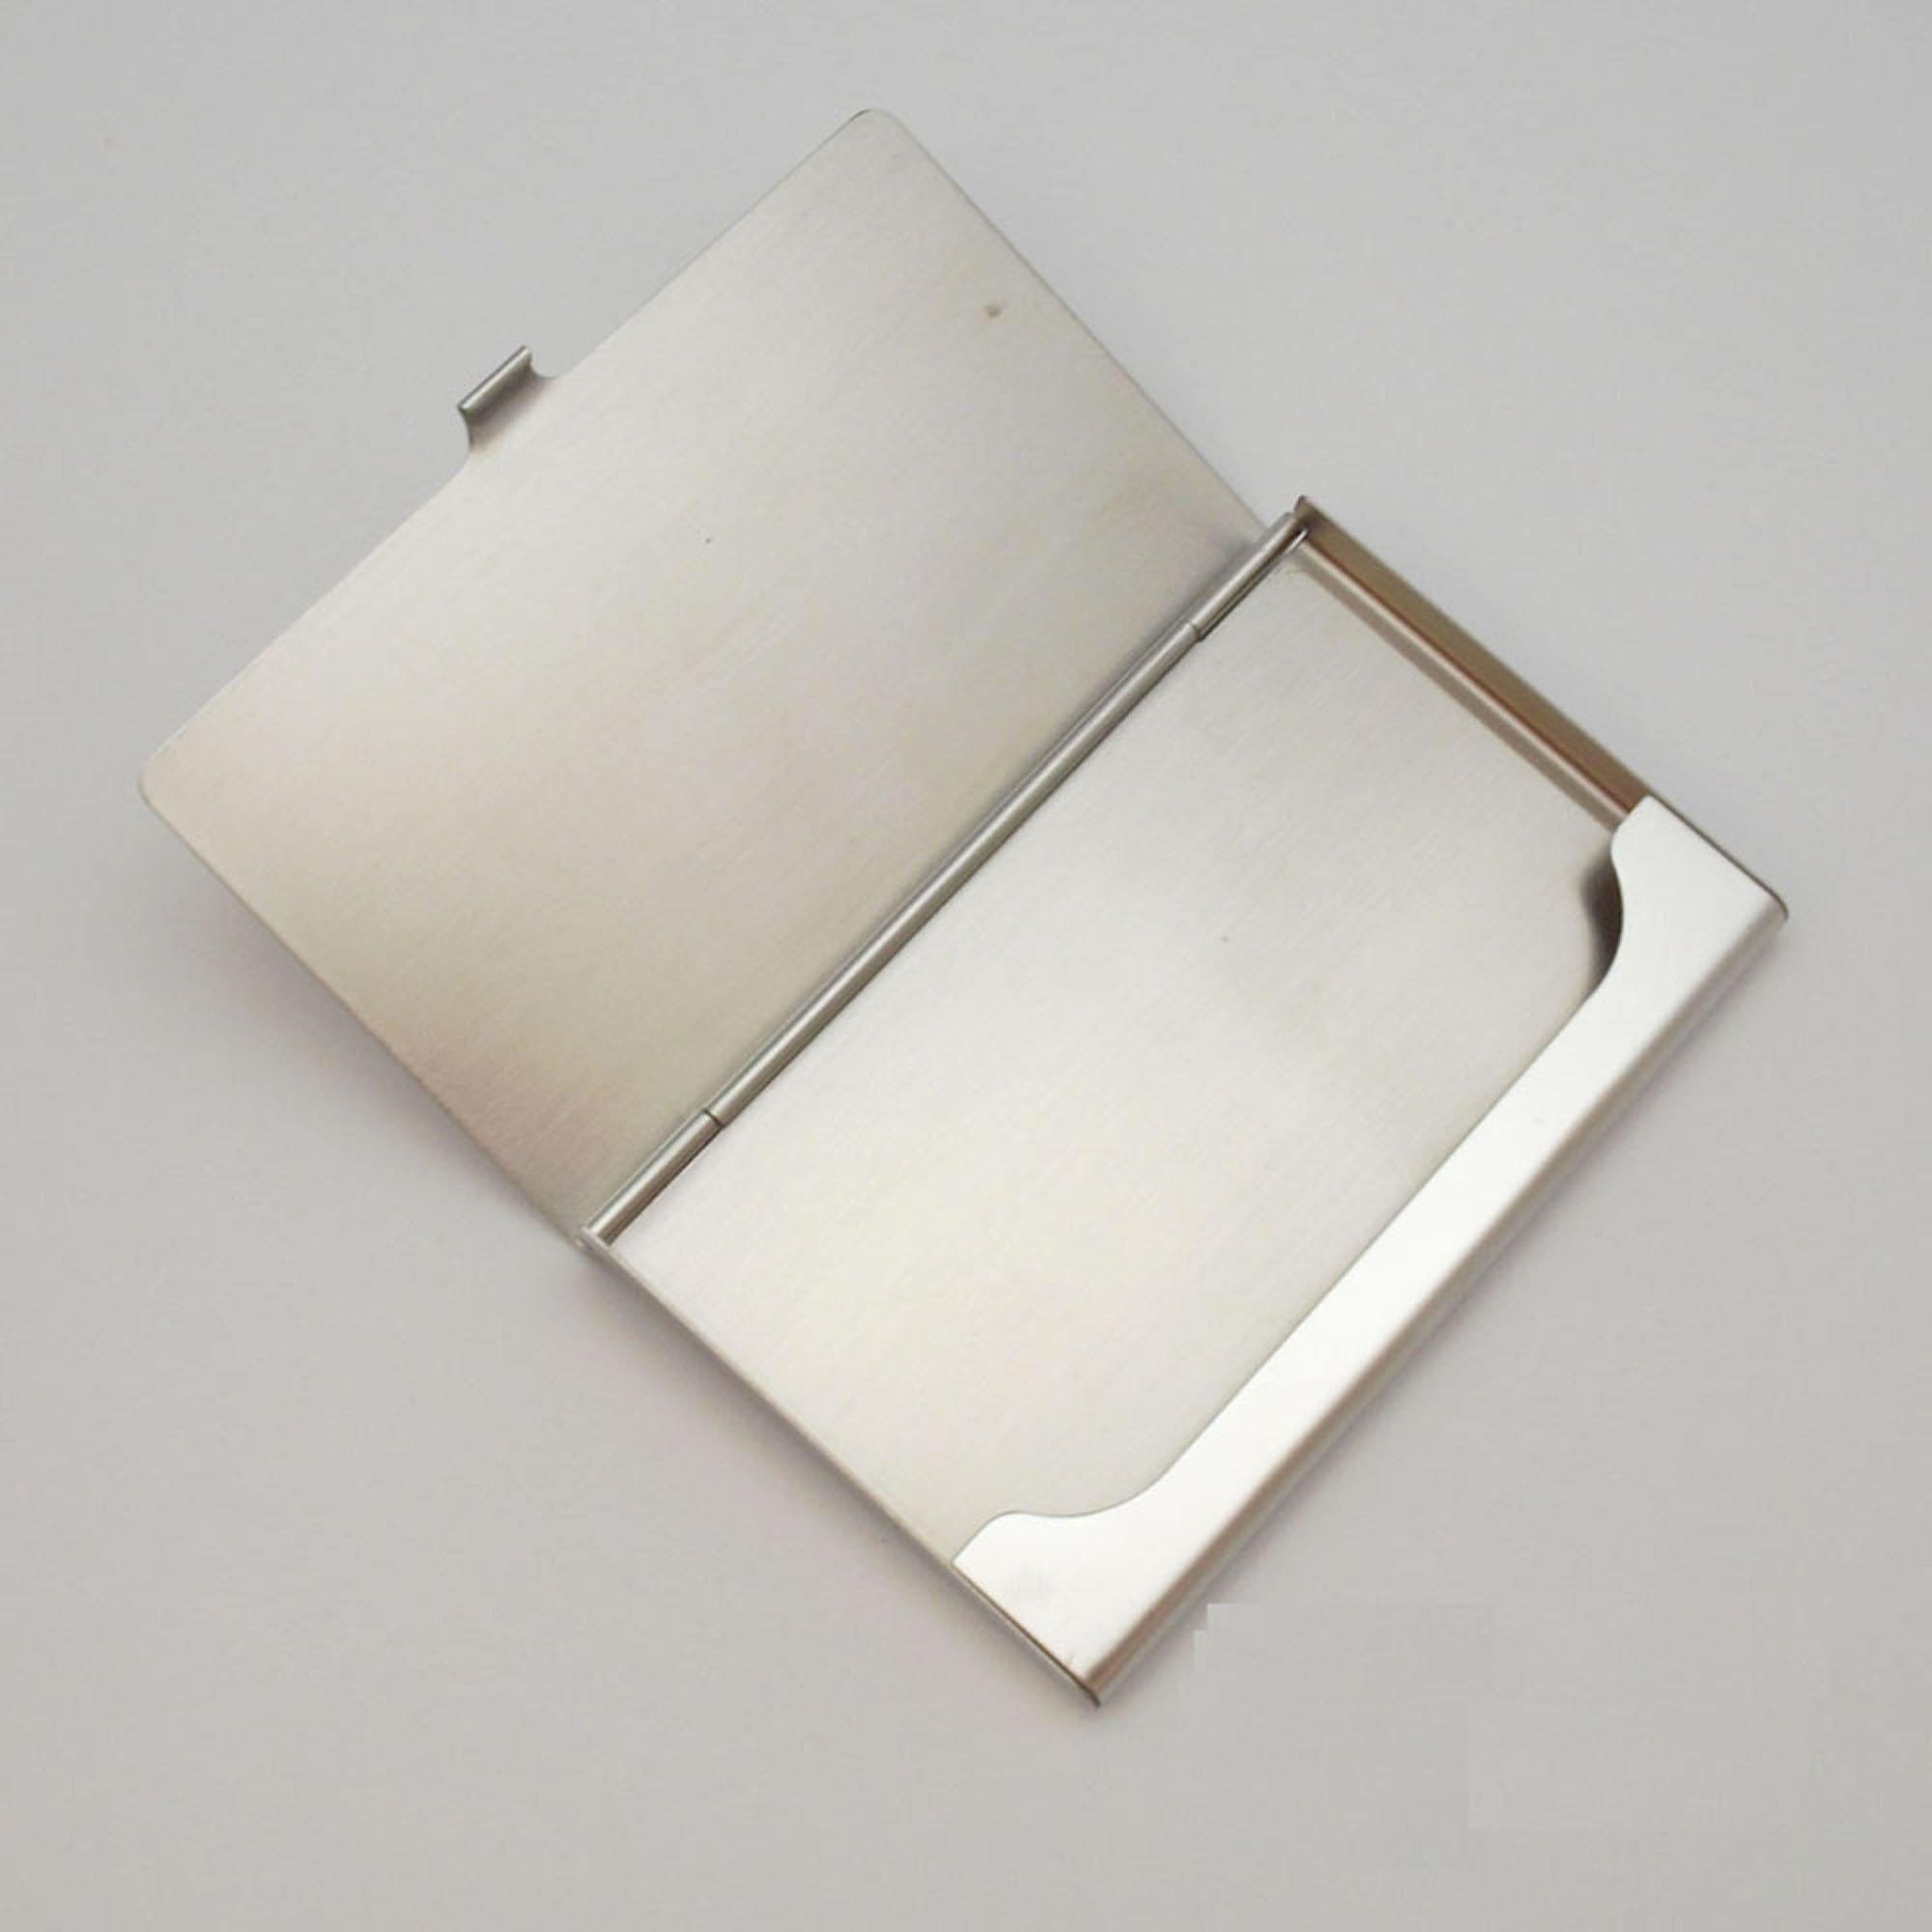 hot selling stainless steel metal mirror business name card holder